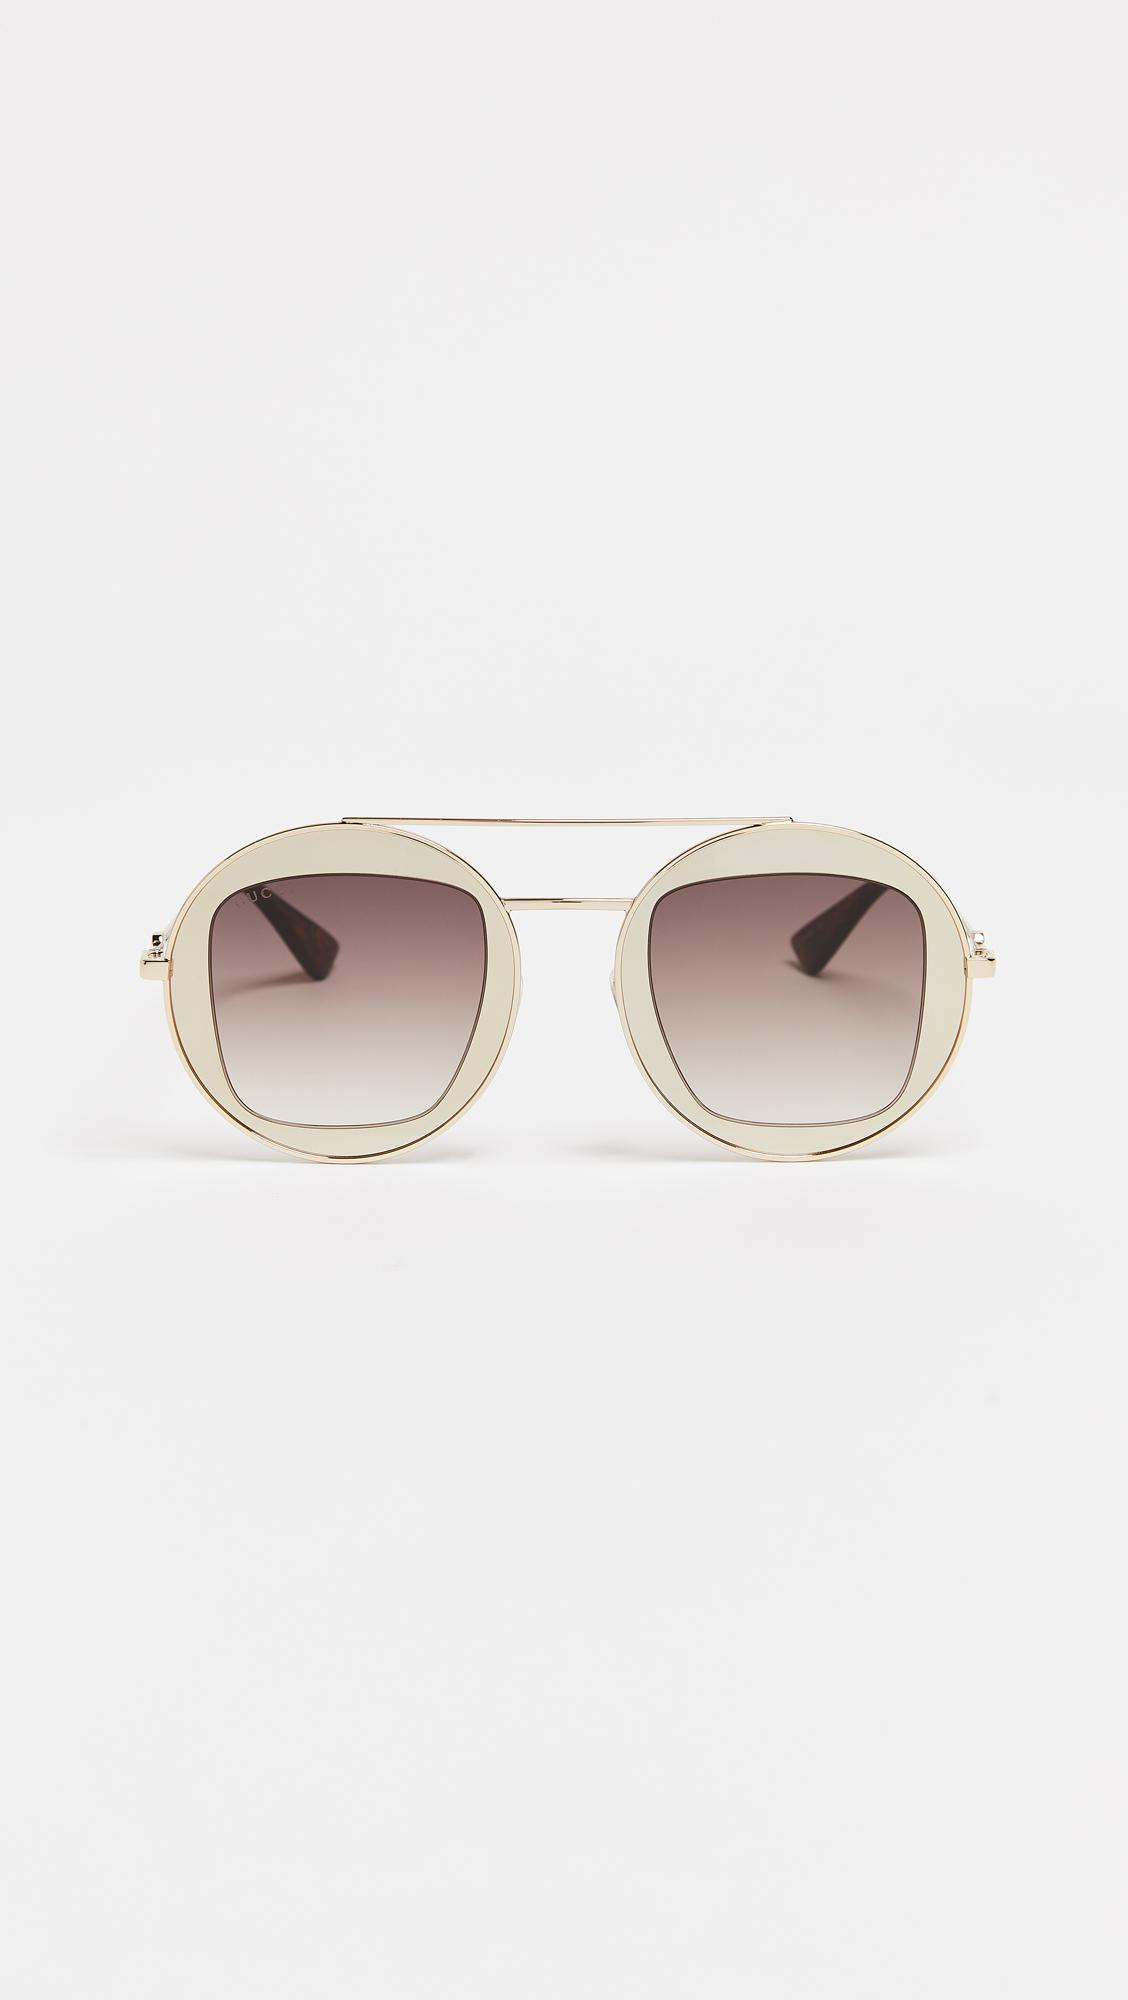 020b0348f0d Gucci Urban Round Sunglasses in Metallic - Lyst